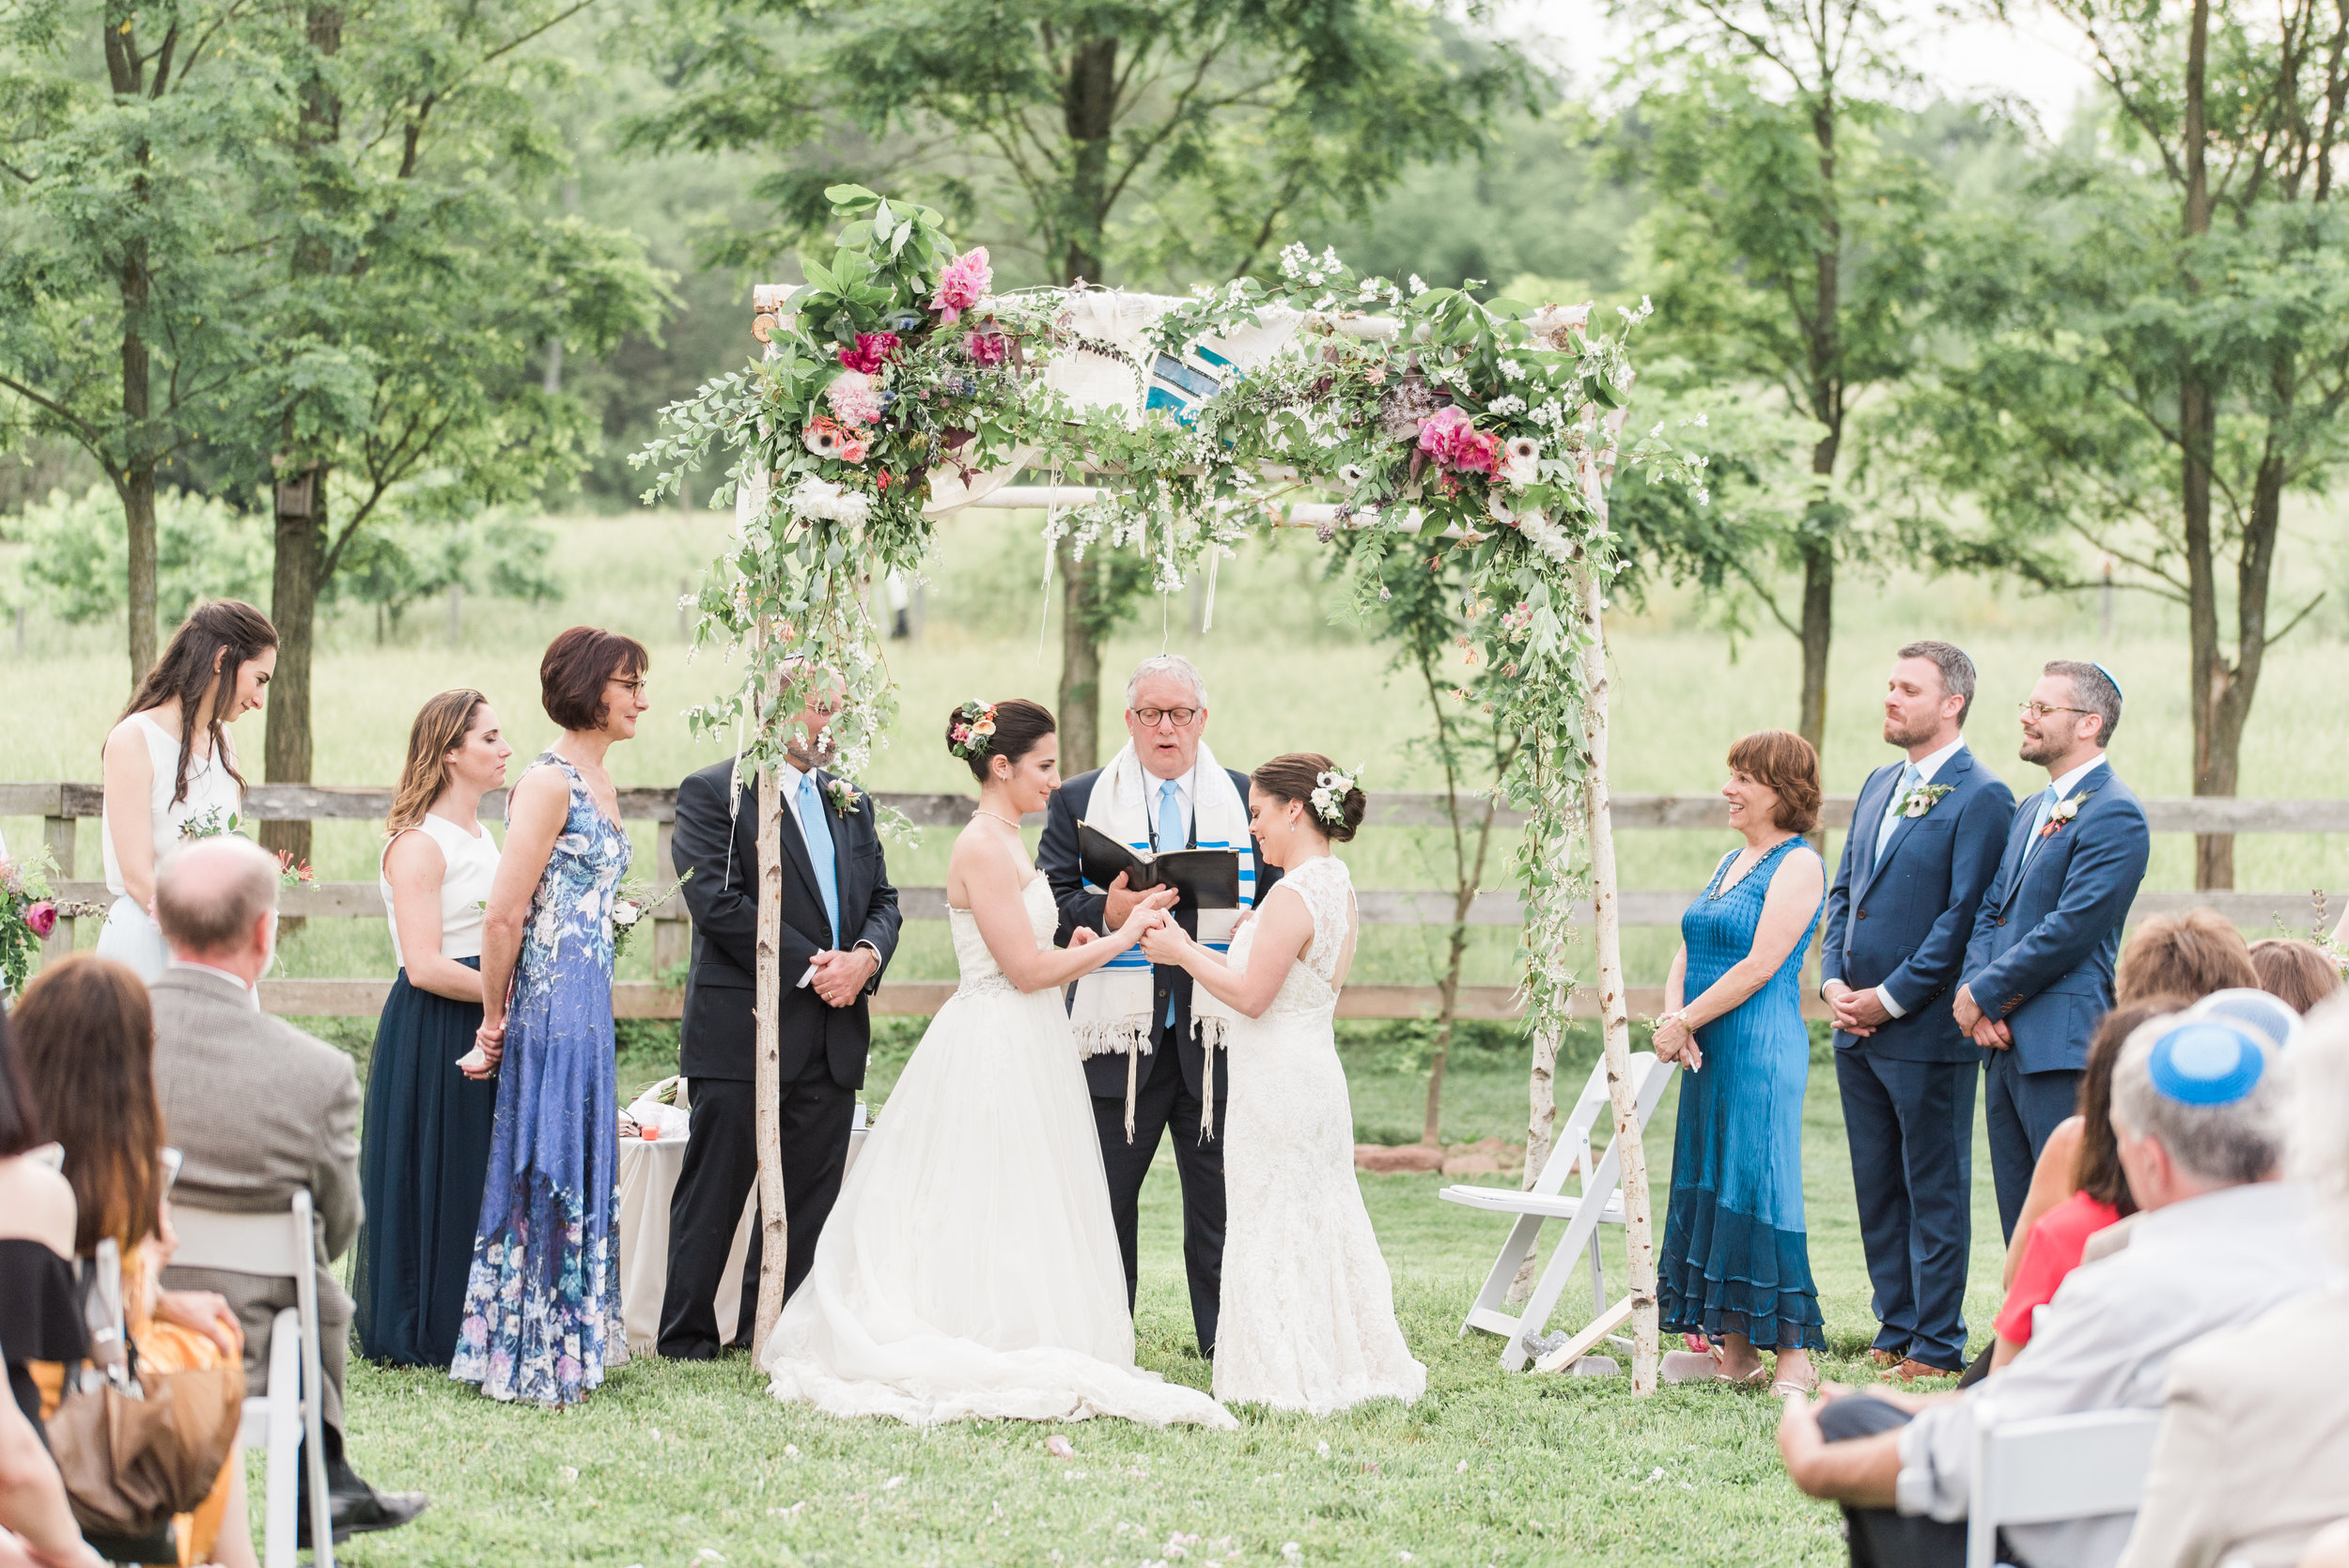 becca & lea wedding - northern virginia - luck and love photography-100.jpg